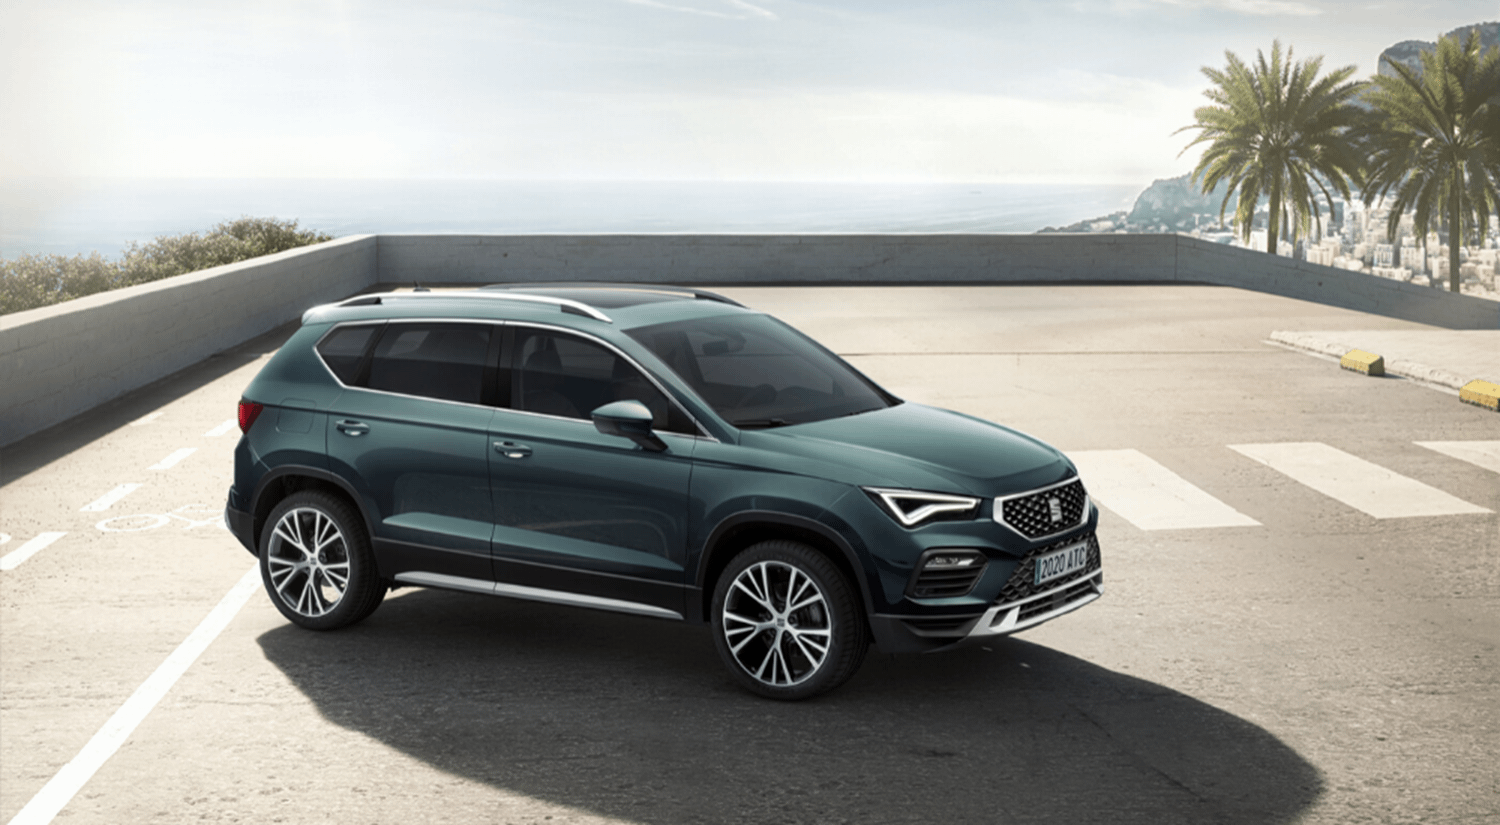 Green SEAT Ateca parked on rooftop carpark